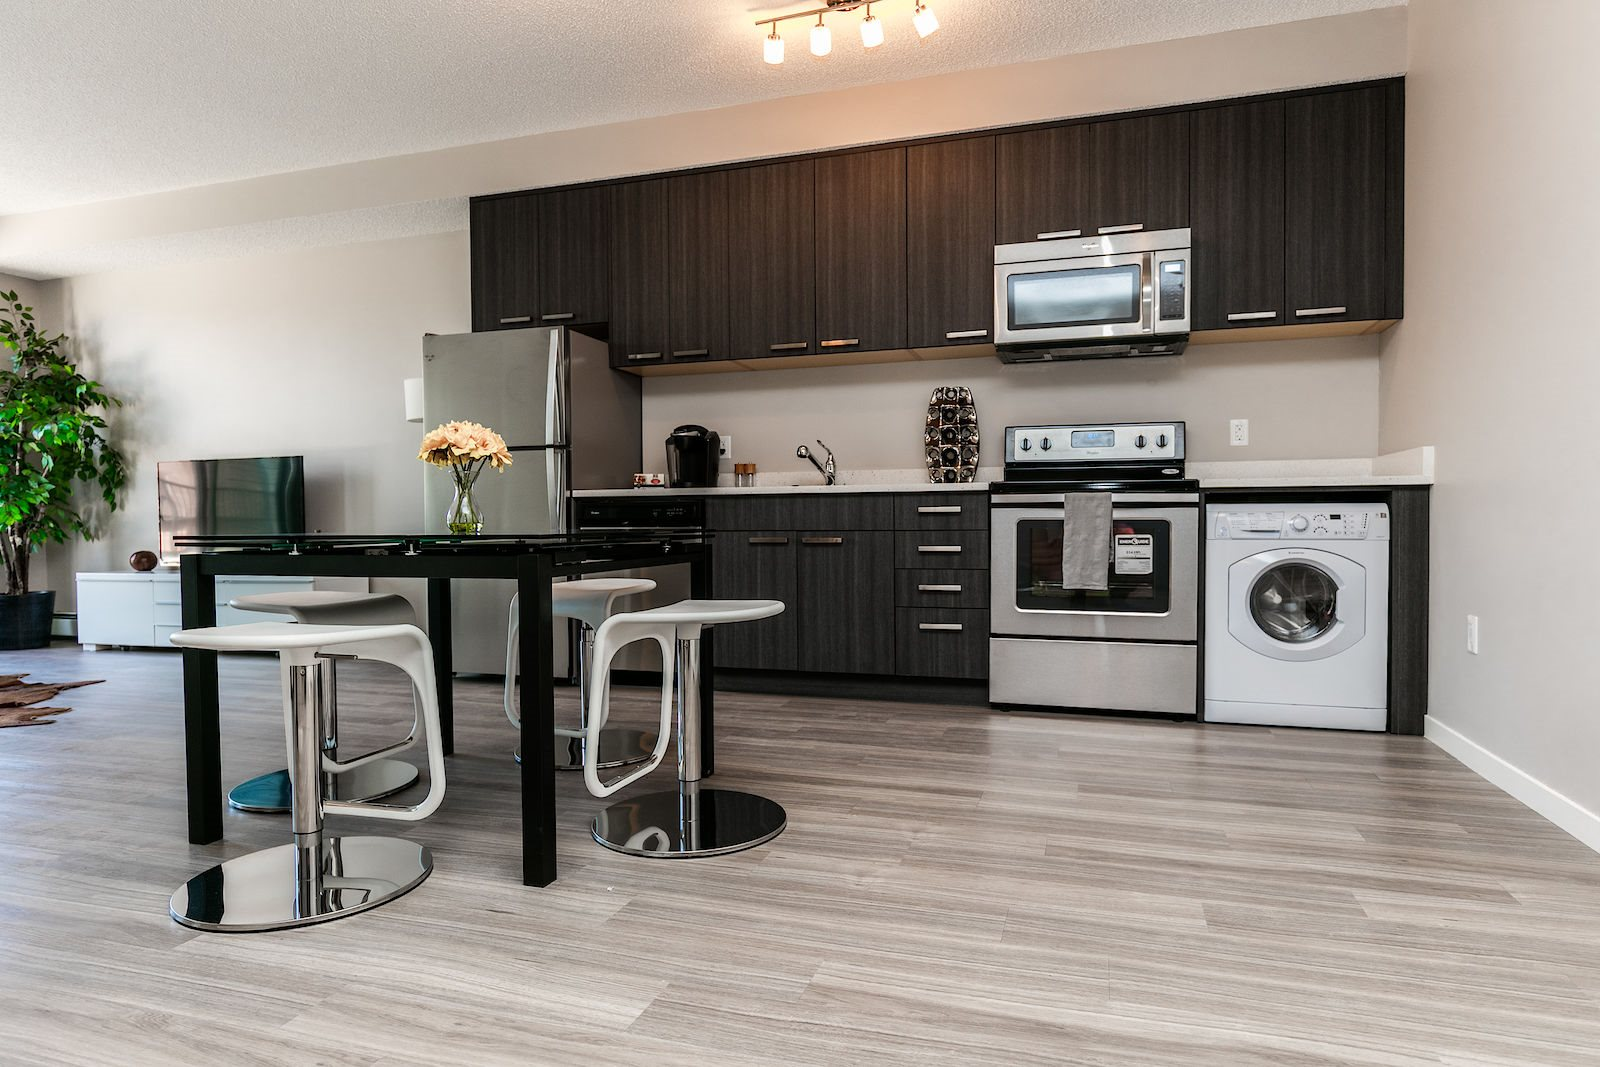 Inglewood 1410 Residential rental apartments convenient in-suite laundry